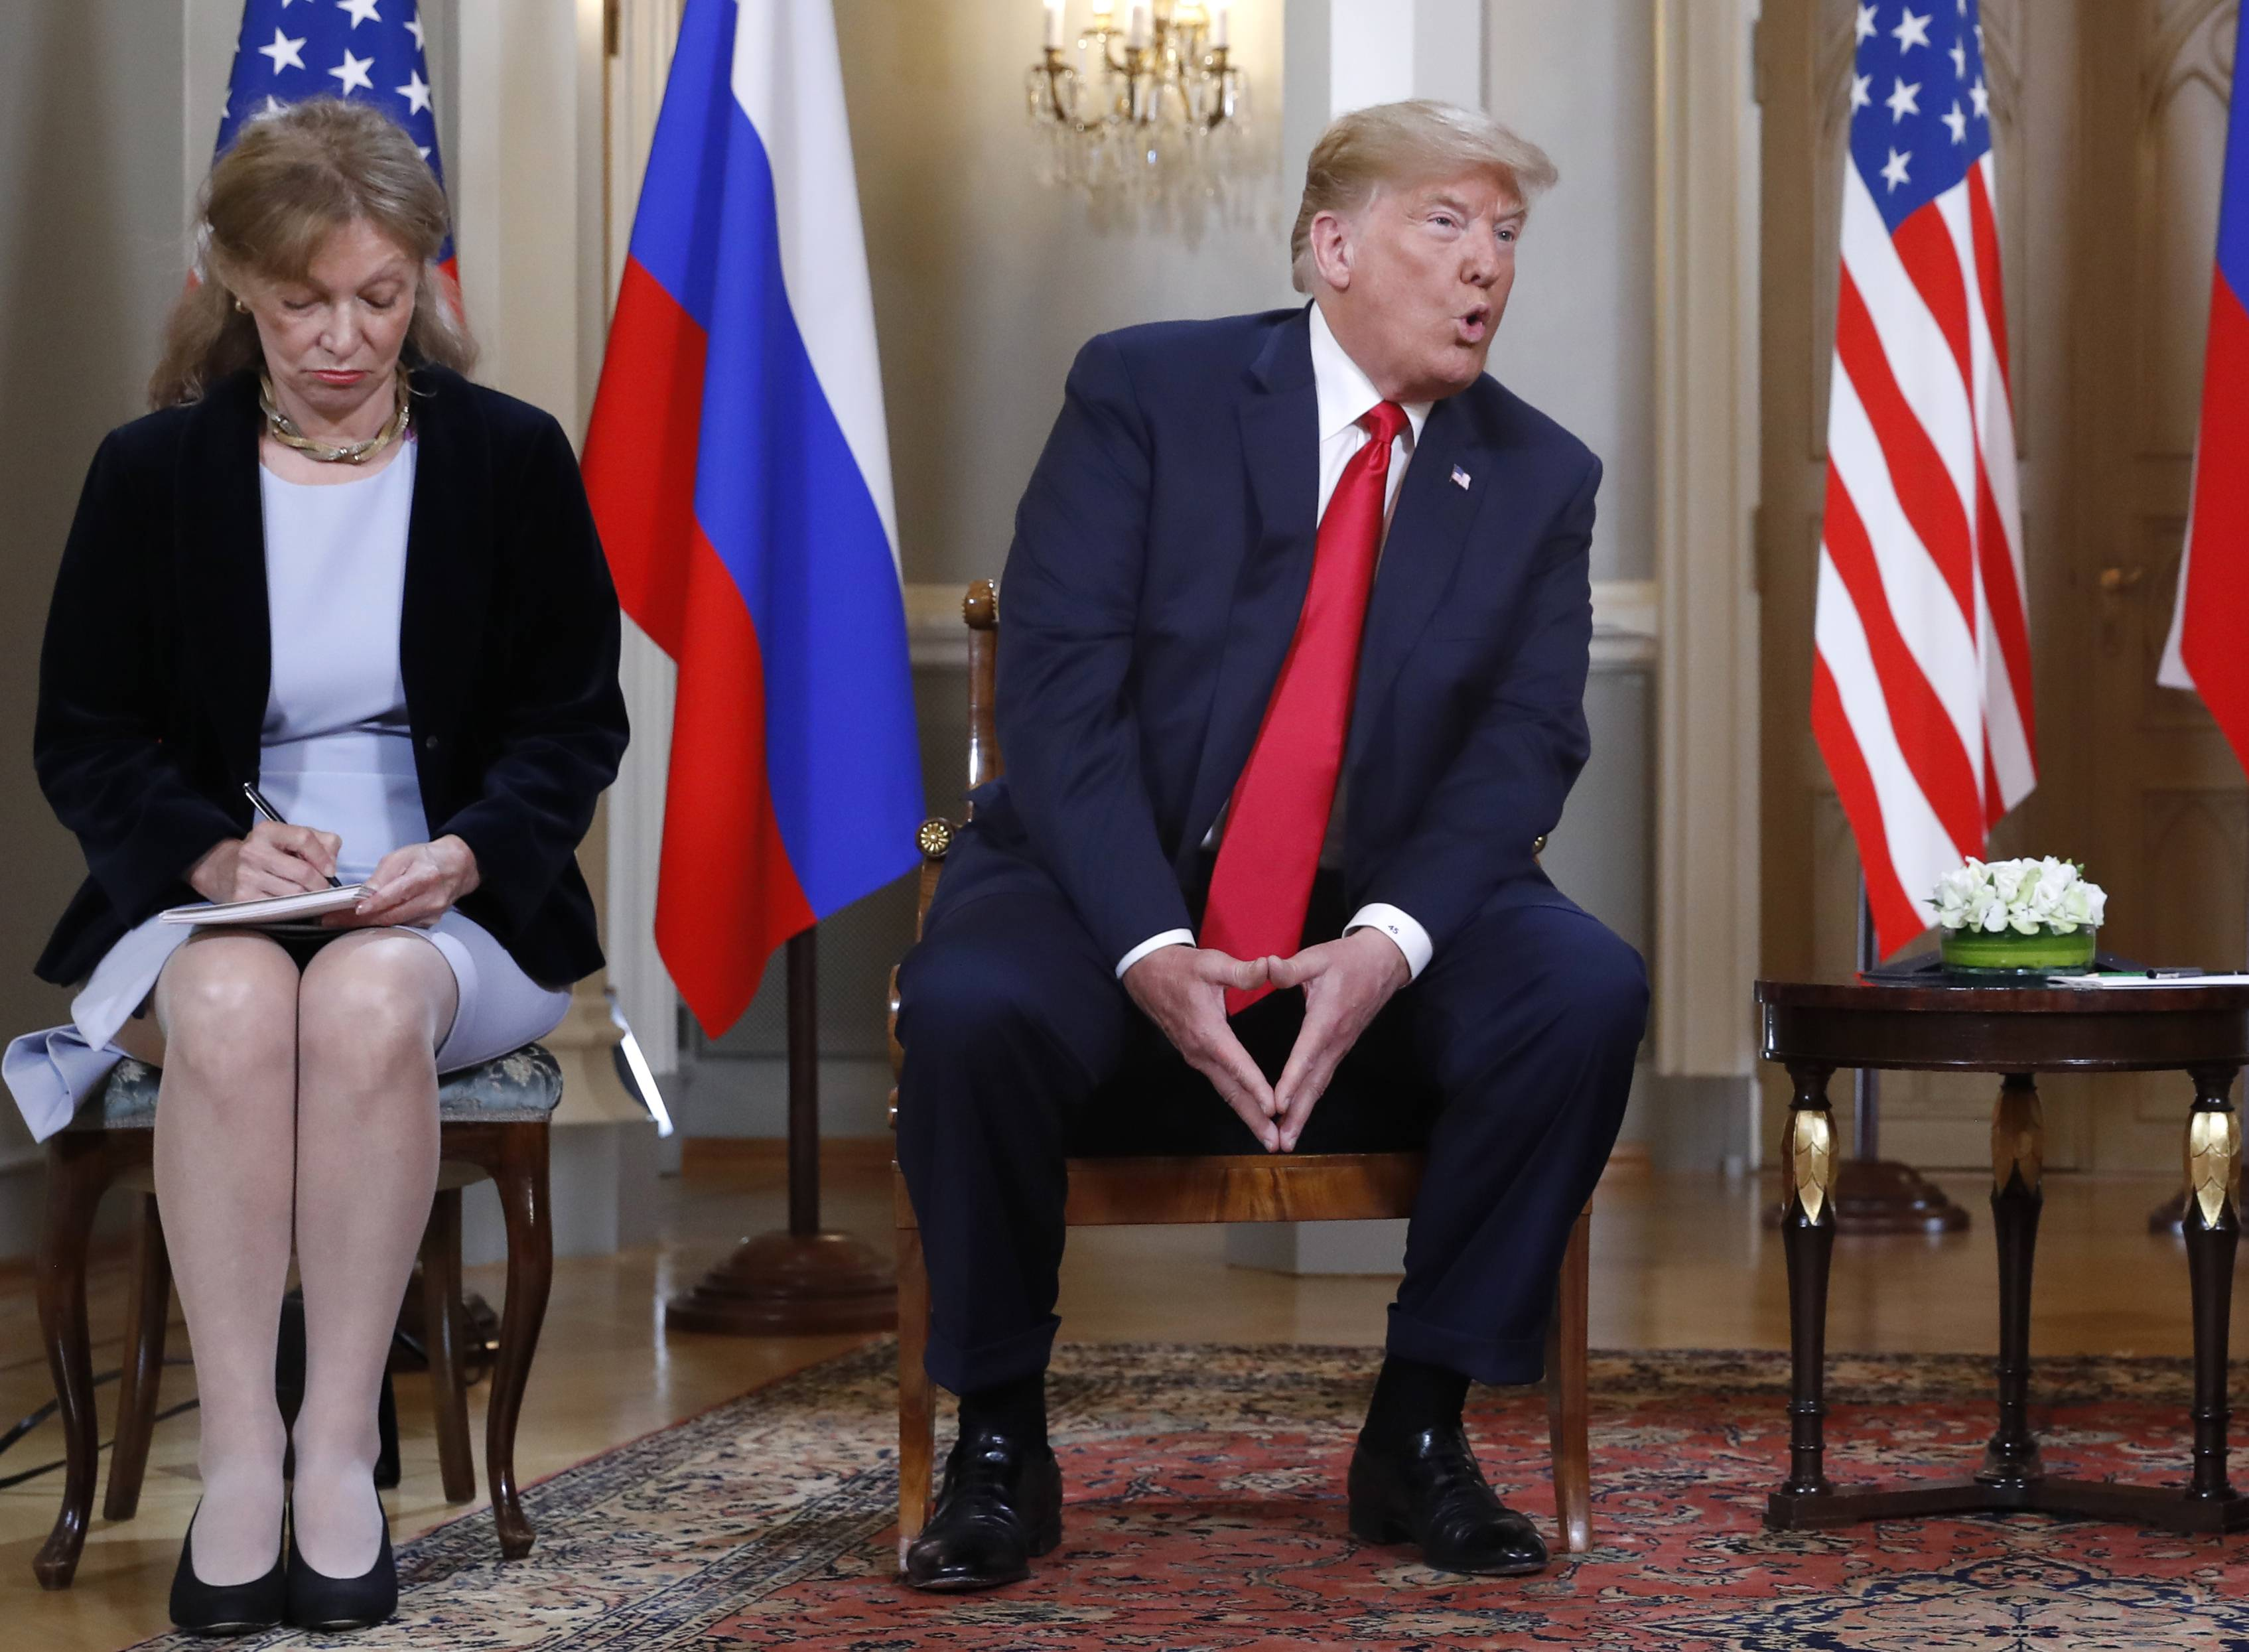 Interpreter Marina Gross, left, takes notes Monday when U.S. President Donald Trump talks to Russian President Vladimir Putin at the beginning of their one-on-one-meeting at the Presidential Palace in Helsinki, Finland.